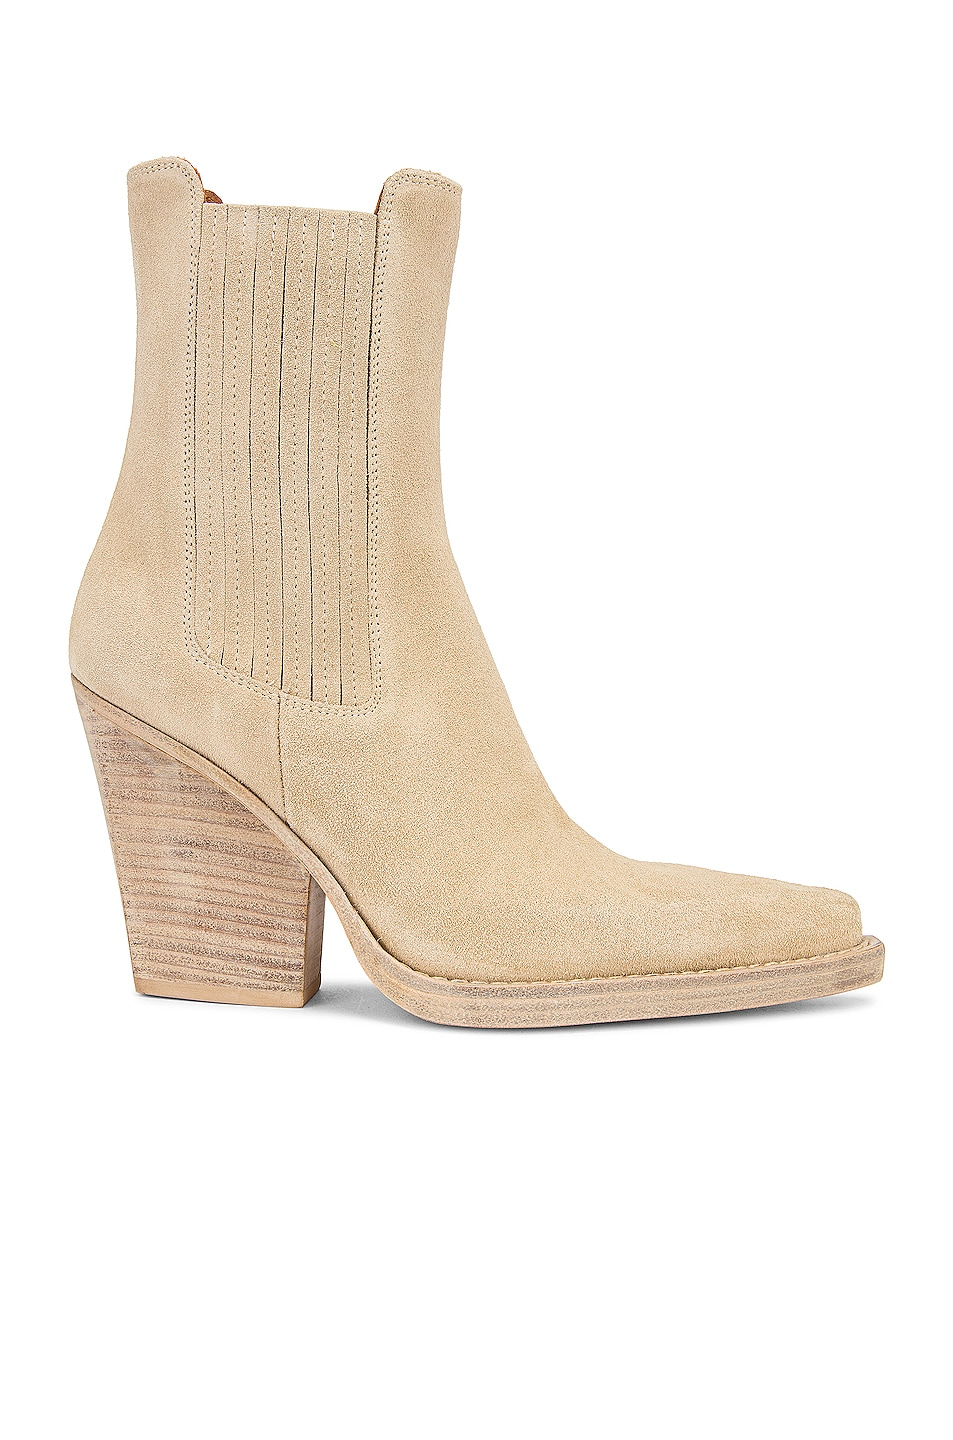 Image 1 of Paris Texas Suede Dallas 100 Ankle Boot in Angora